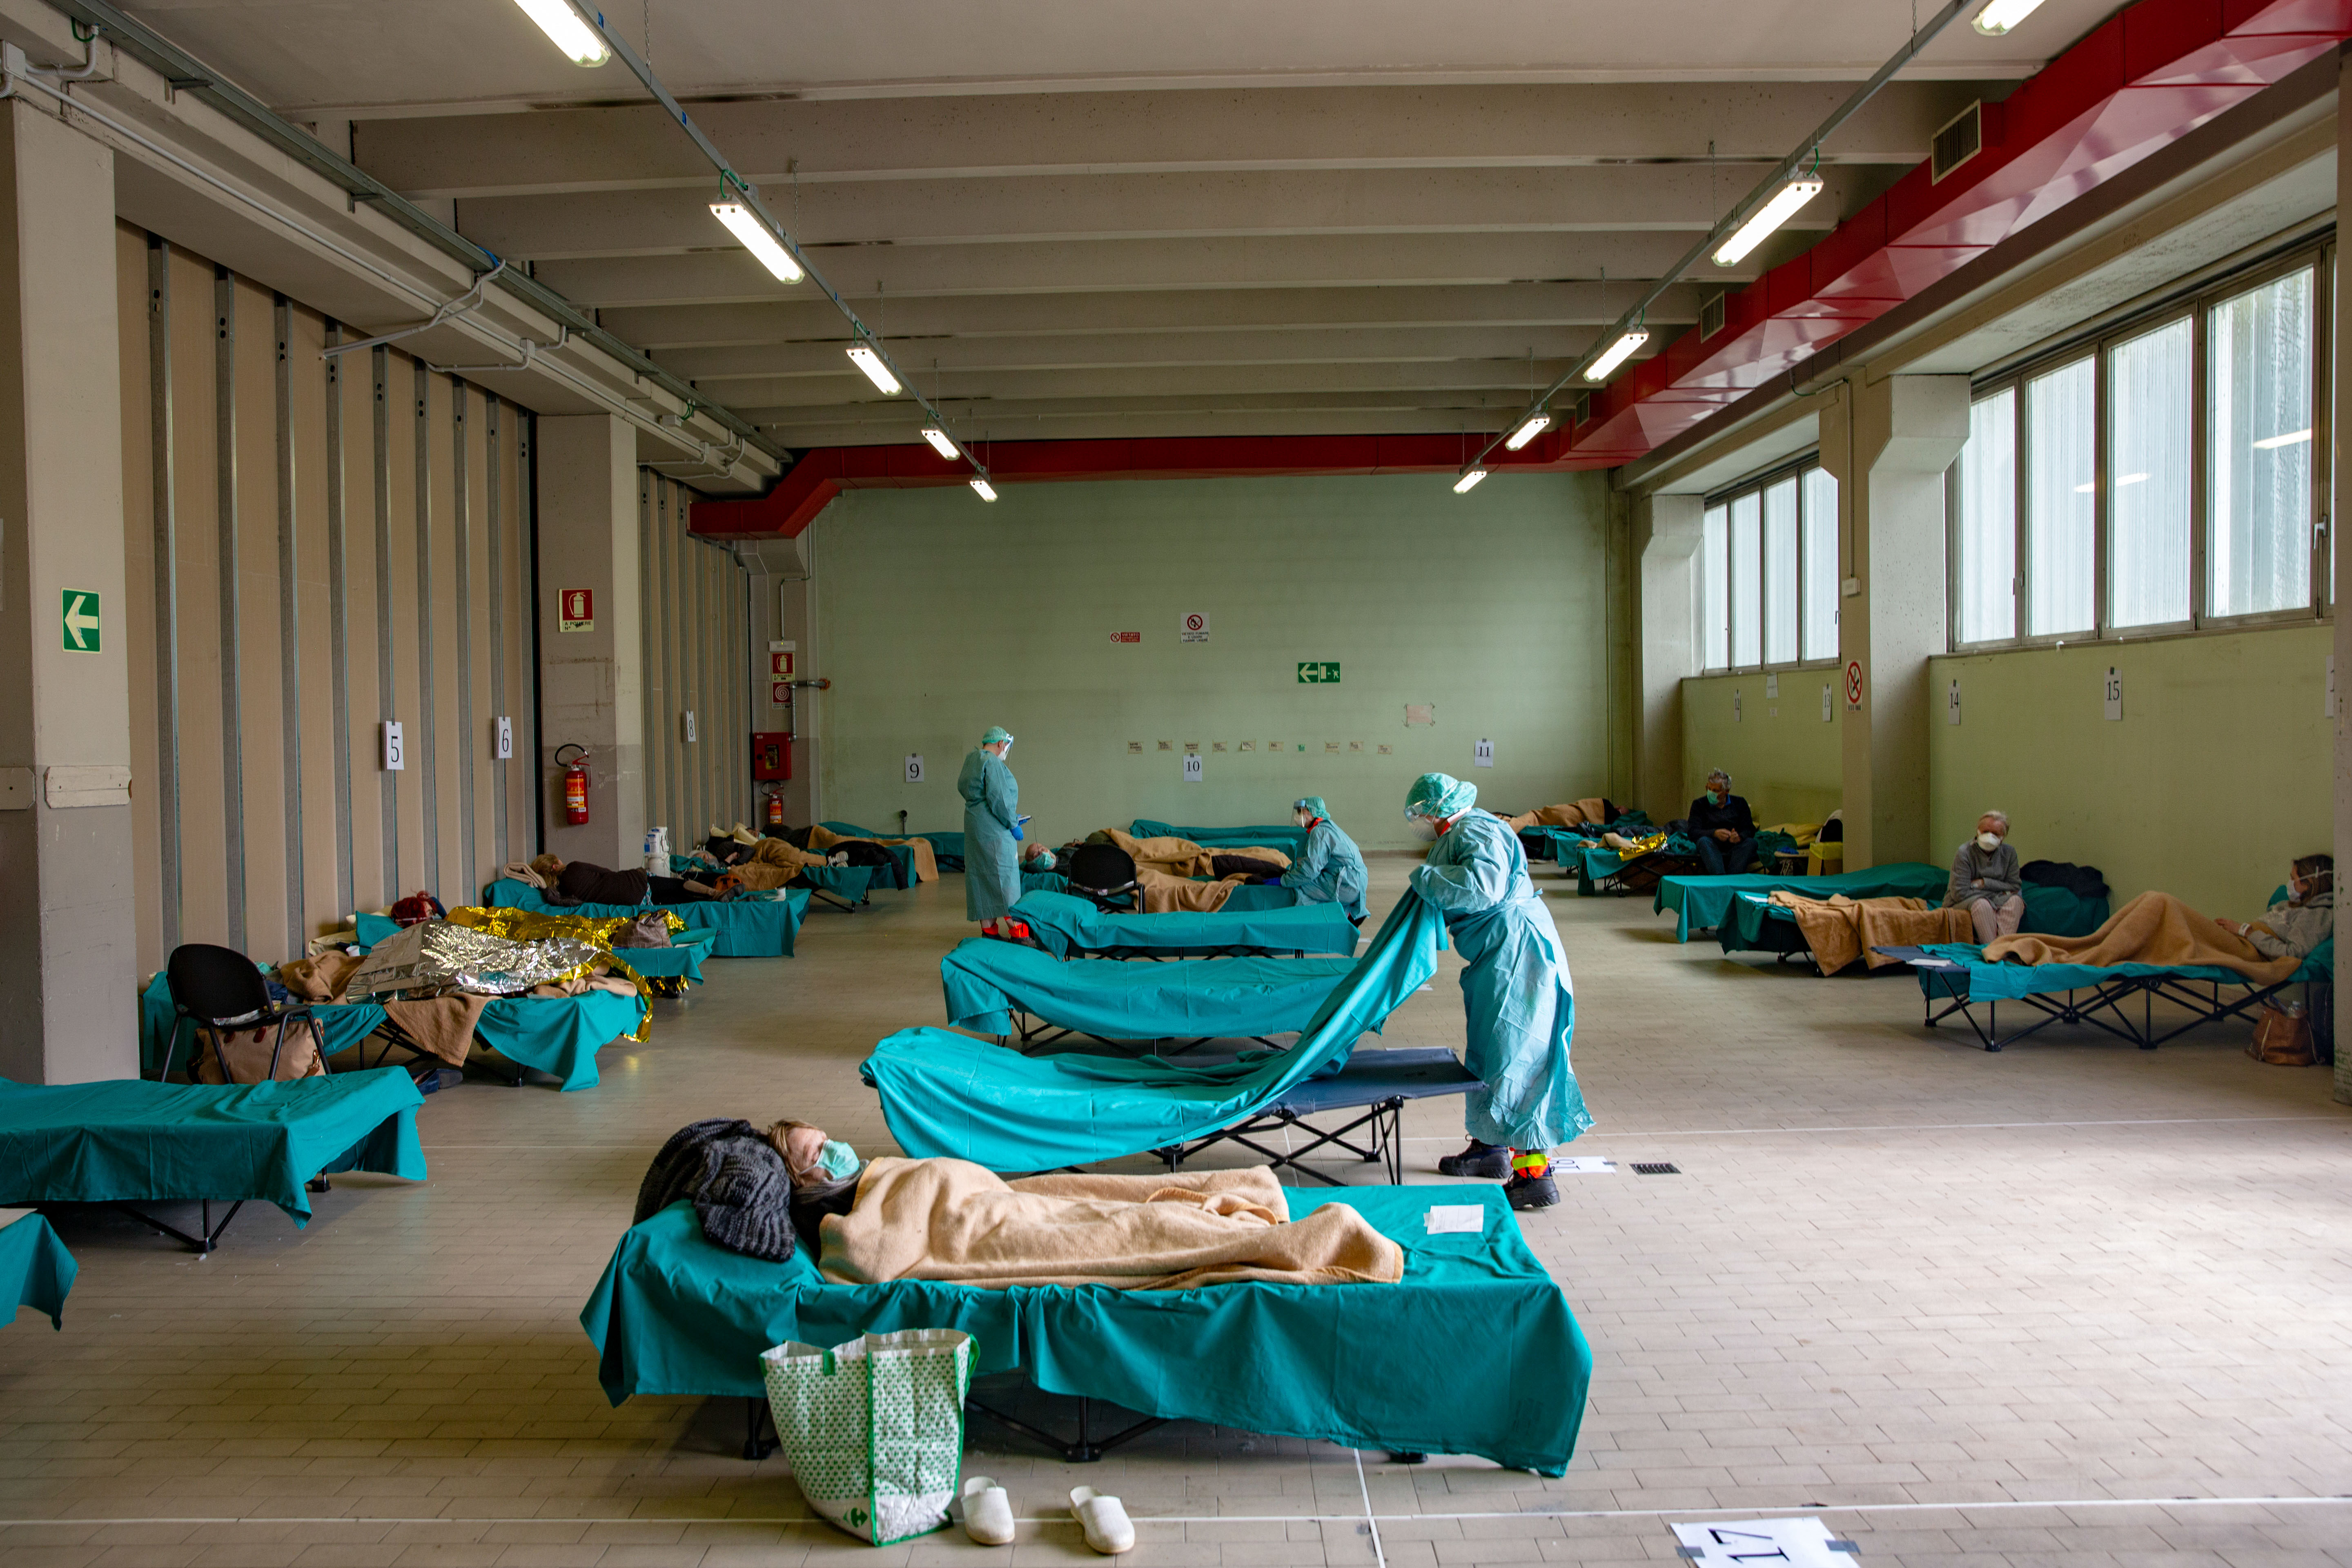 Medical personnel care for patients in an emergency temporary room, set up to ease pressure on the healthcare system, at a hospital in Brescia, Italy, on Friday, March 13, 2020.